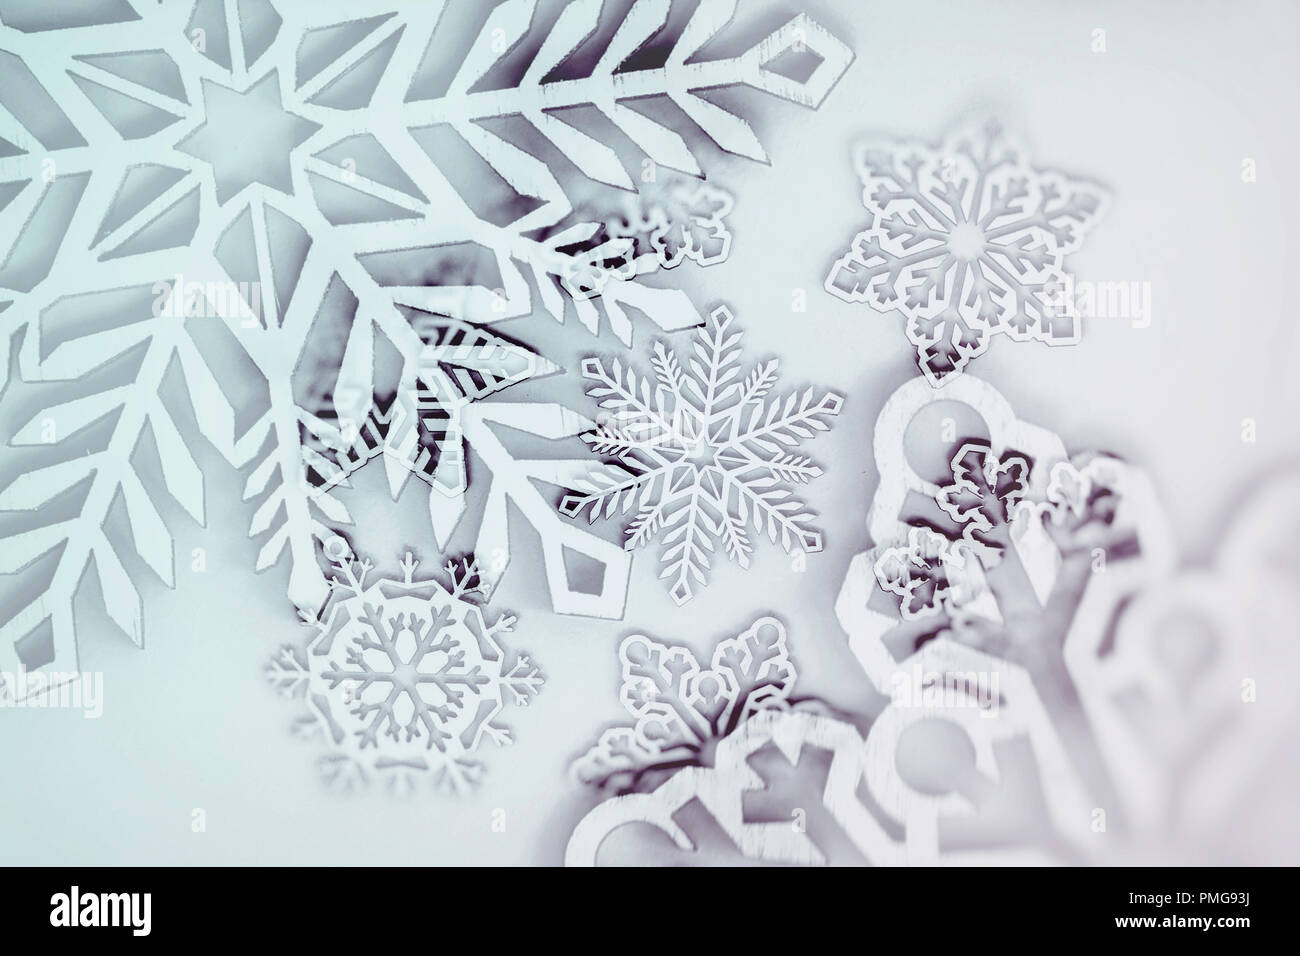 Abstract christmas background, snowflakes of different shapes and colors, blurred selective focus - Stock Image